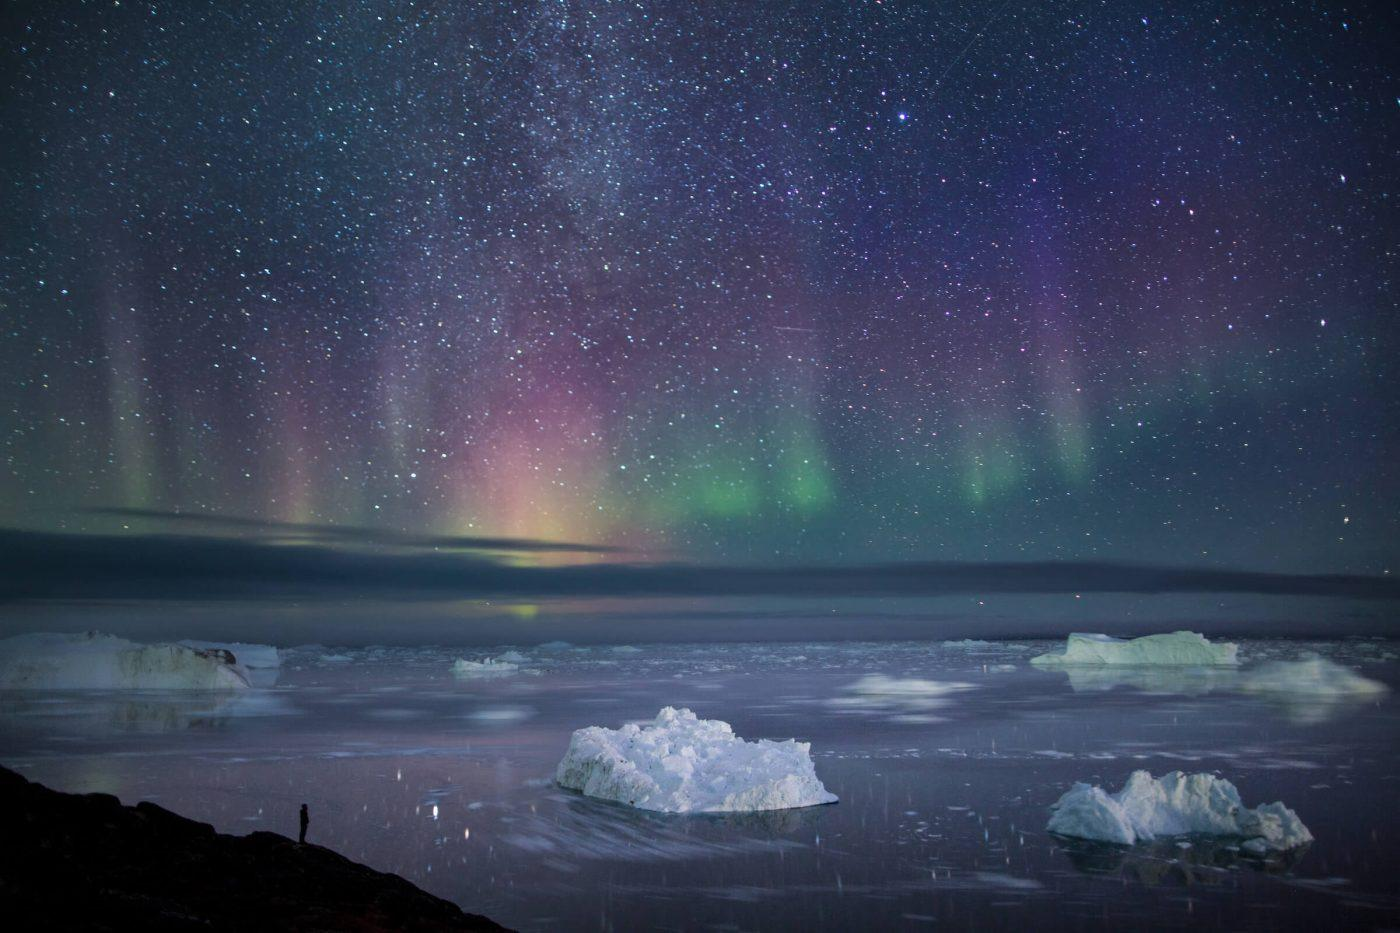 Hiker in Ilulissat, North Greenland standing at the Sermermiut overlook close to the Ilulissat Icefjord gazing at icebergs and a crisp autumn night sky filled with stars and northern lights. Photo by Paul Zizka